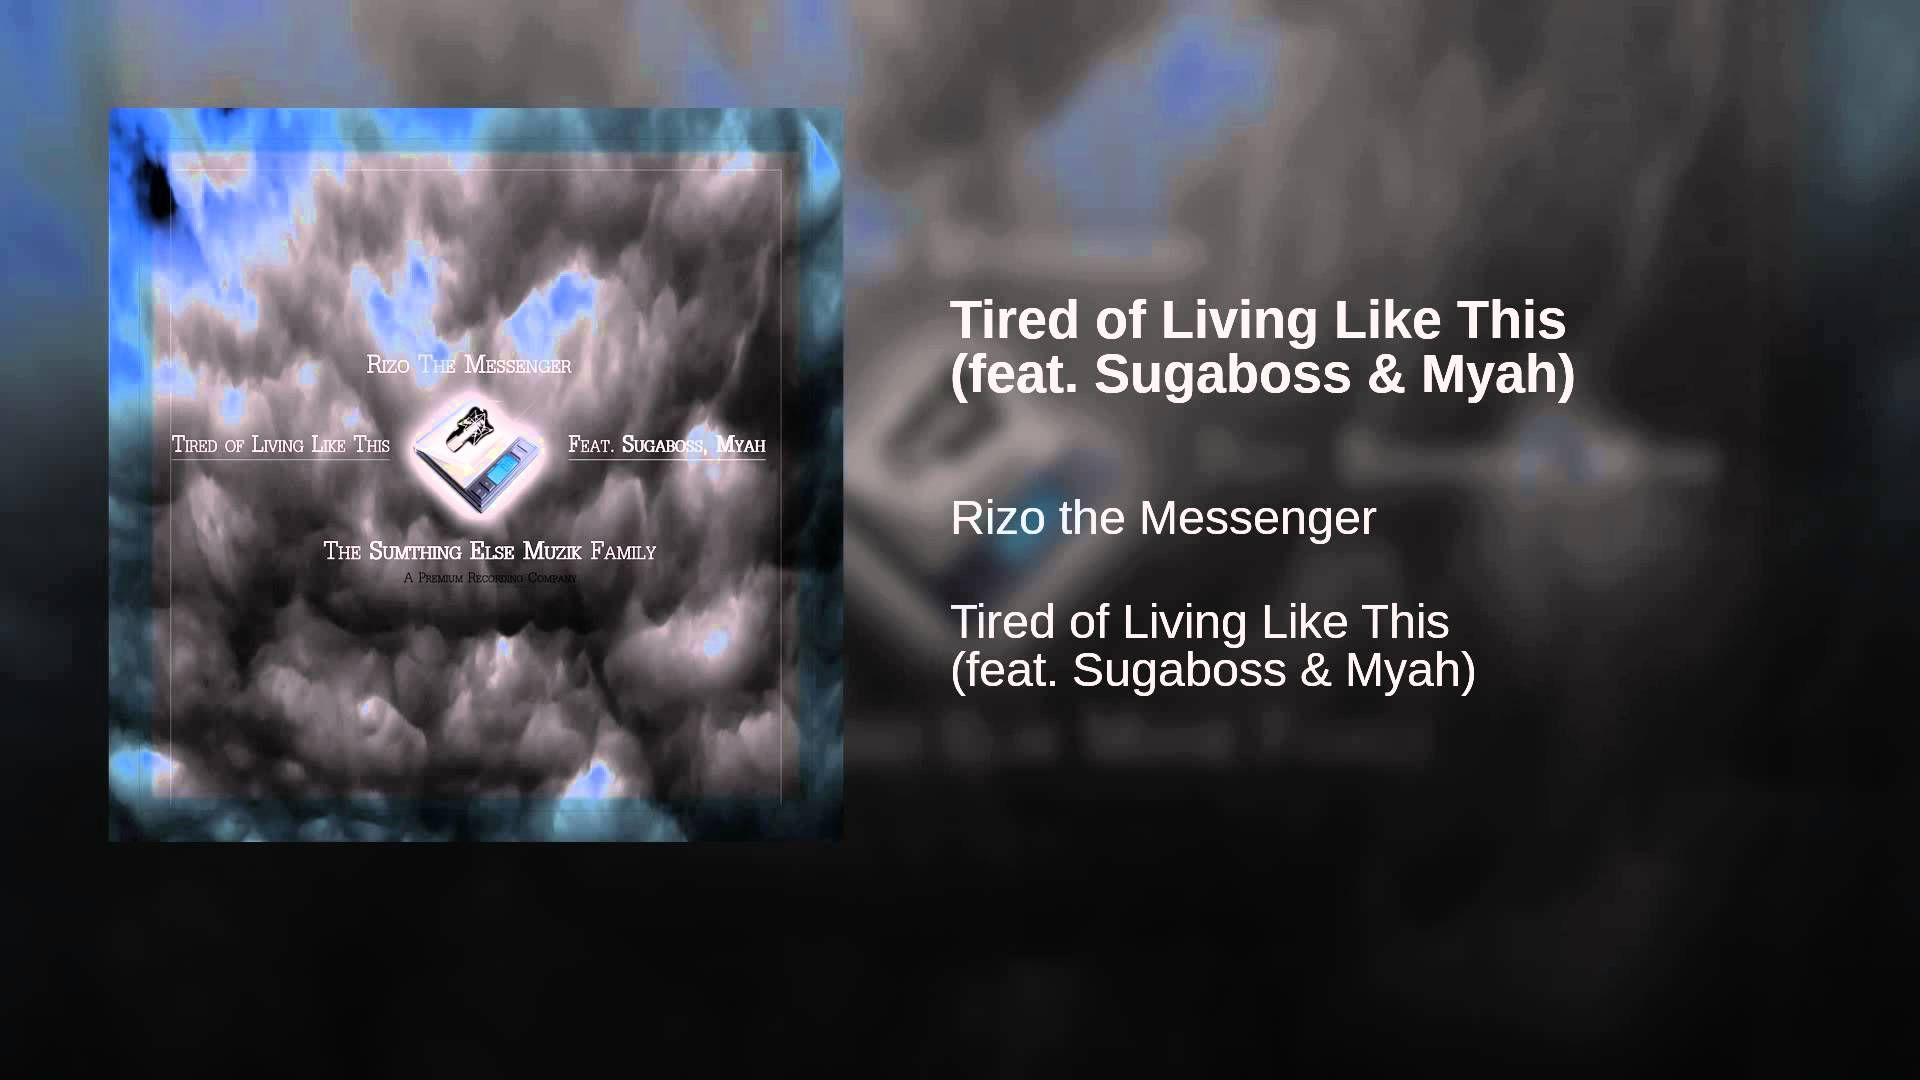 Tired of Living Like This (feat. Sugaboss & Myah)